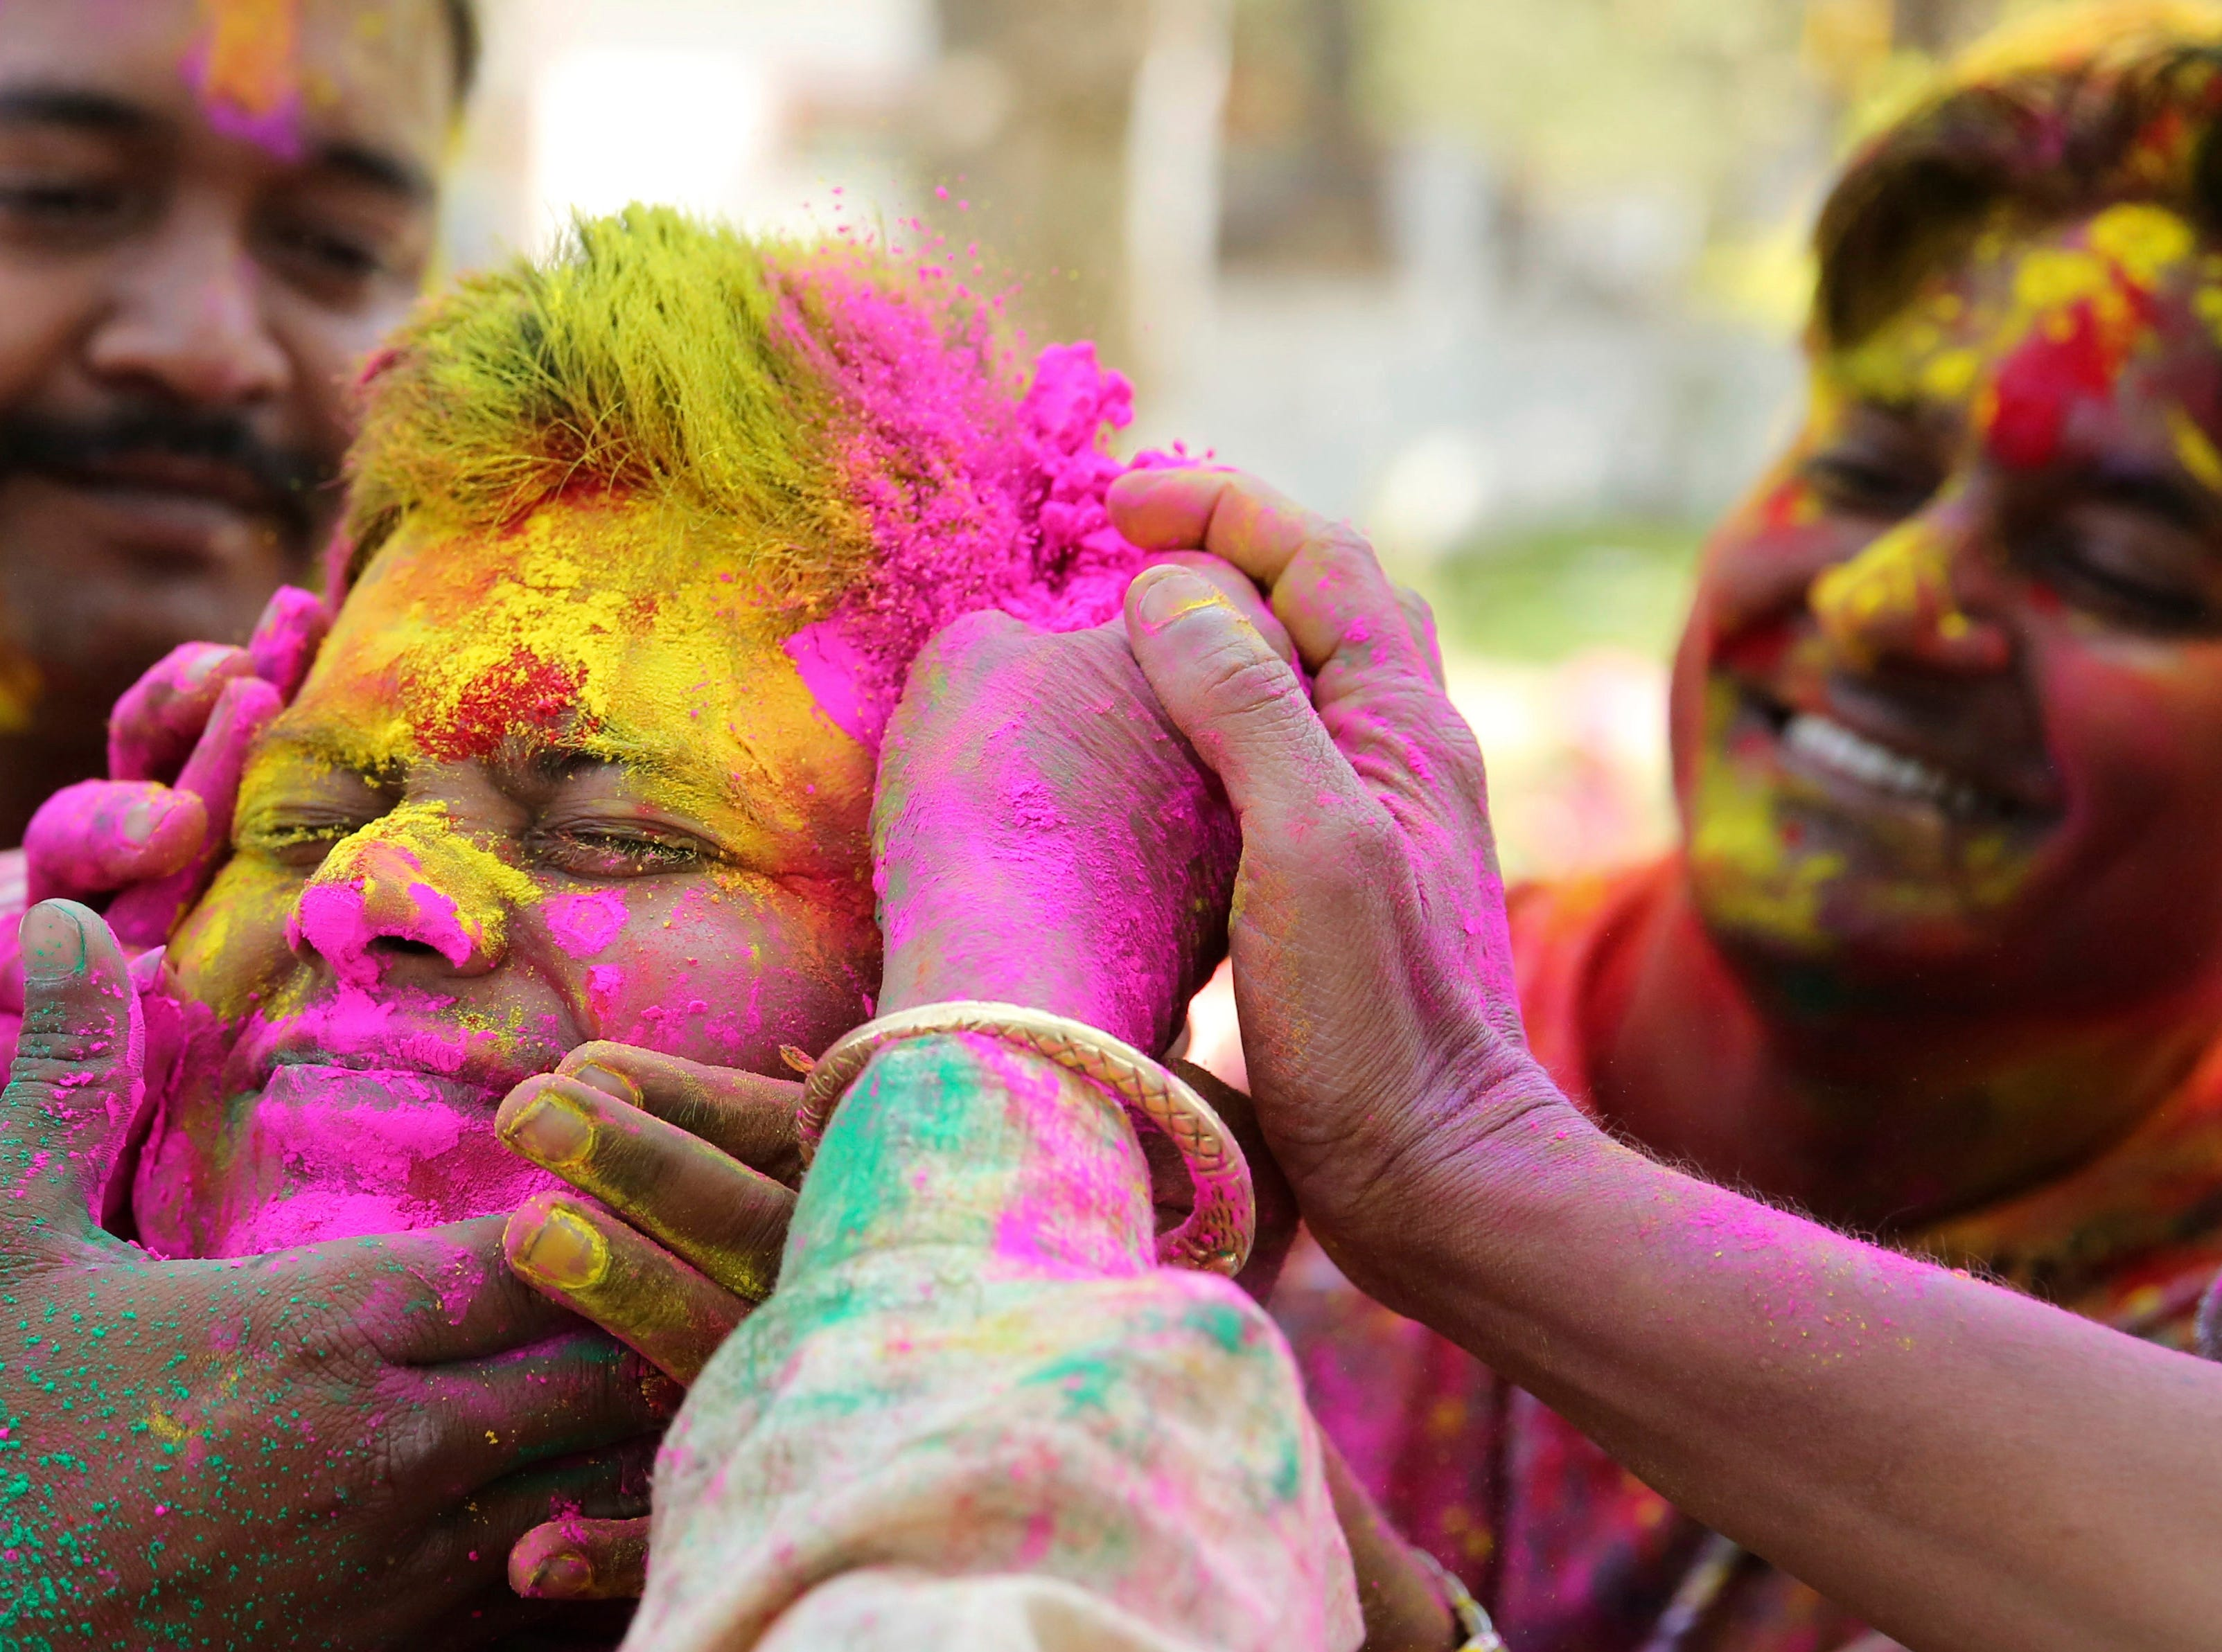 An Indian man has colored powder smeared on his face during celebrations marking Holi, the Hindu festival of colors, in Allahabad, India, Wednesday, March 20, 2019.